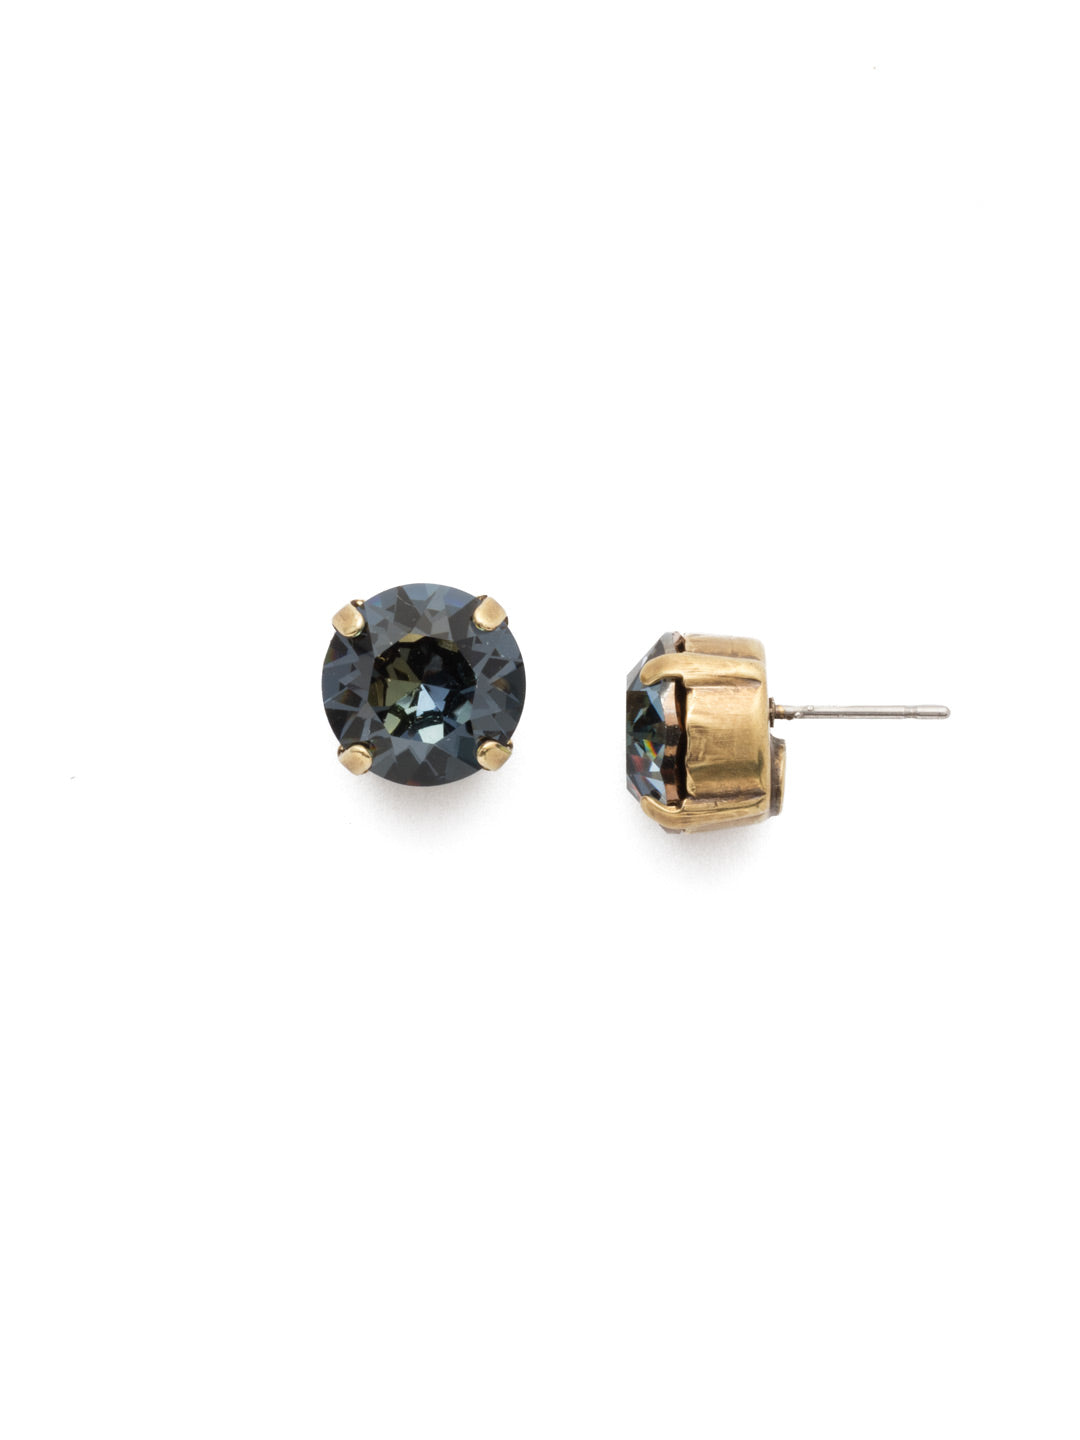 Round Crystal Stud Earrings - ECM14AGSDE